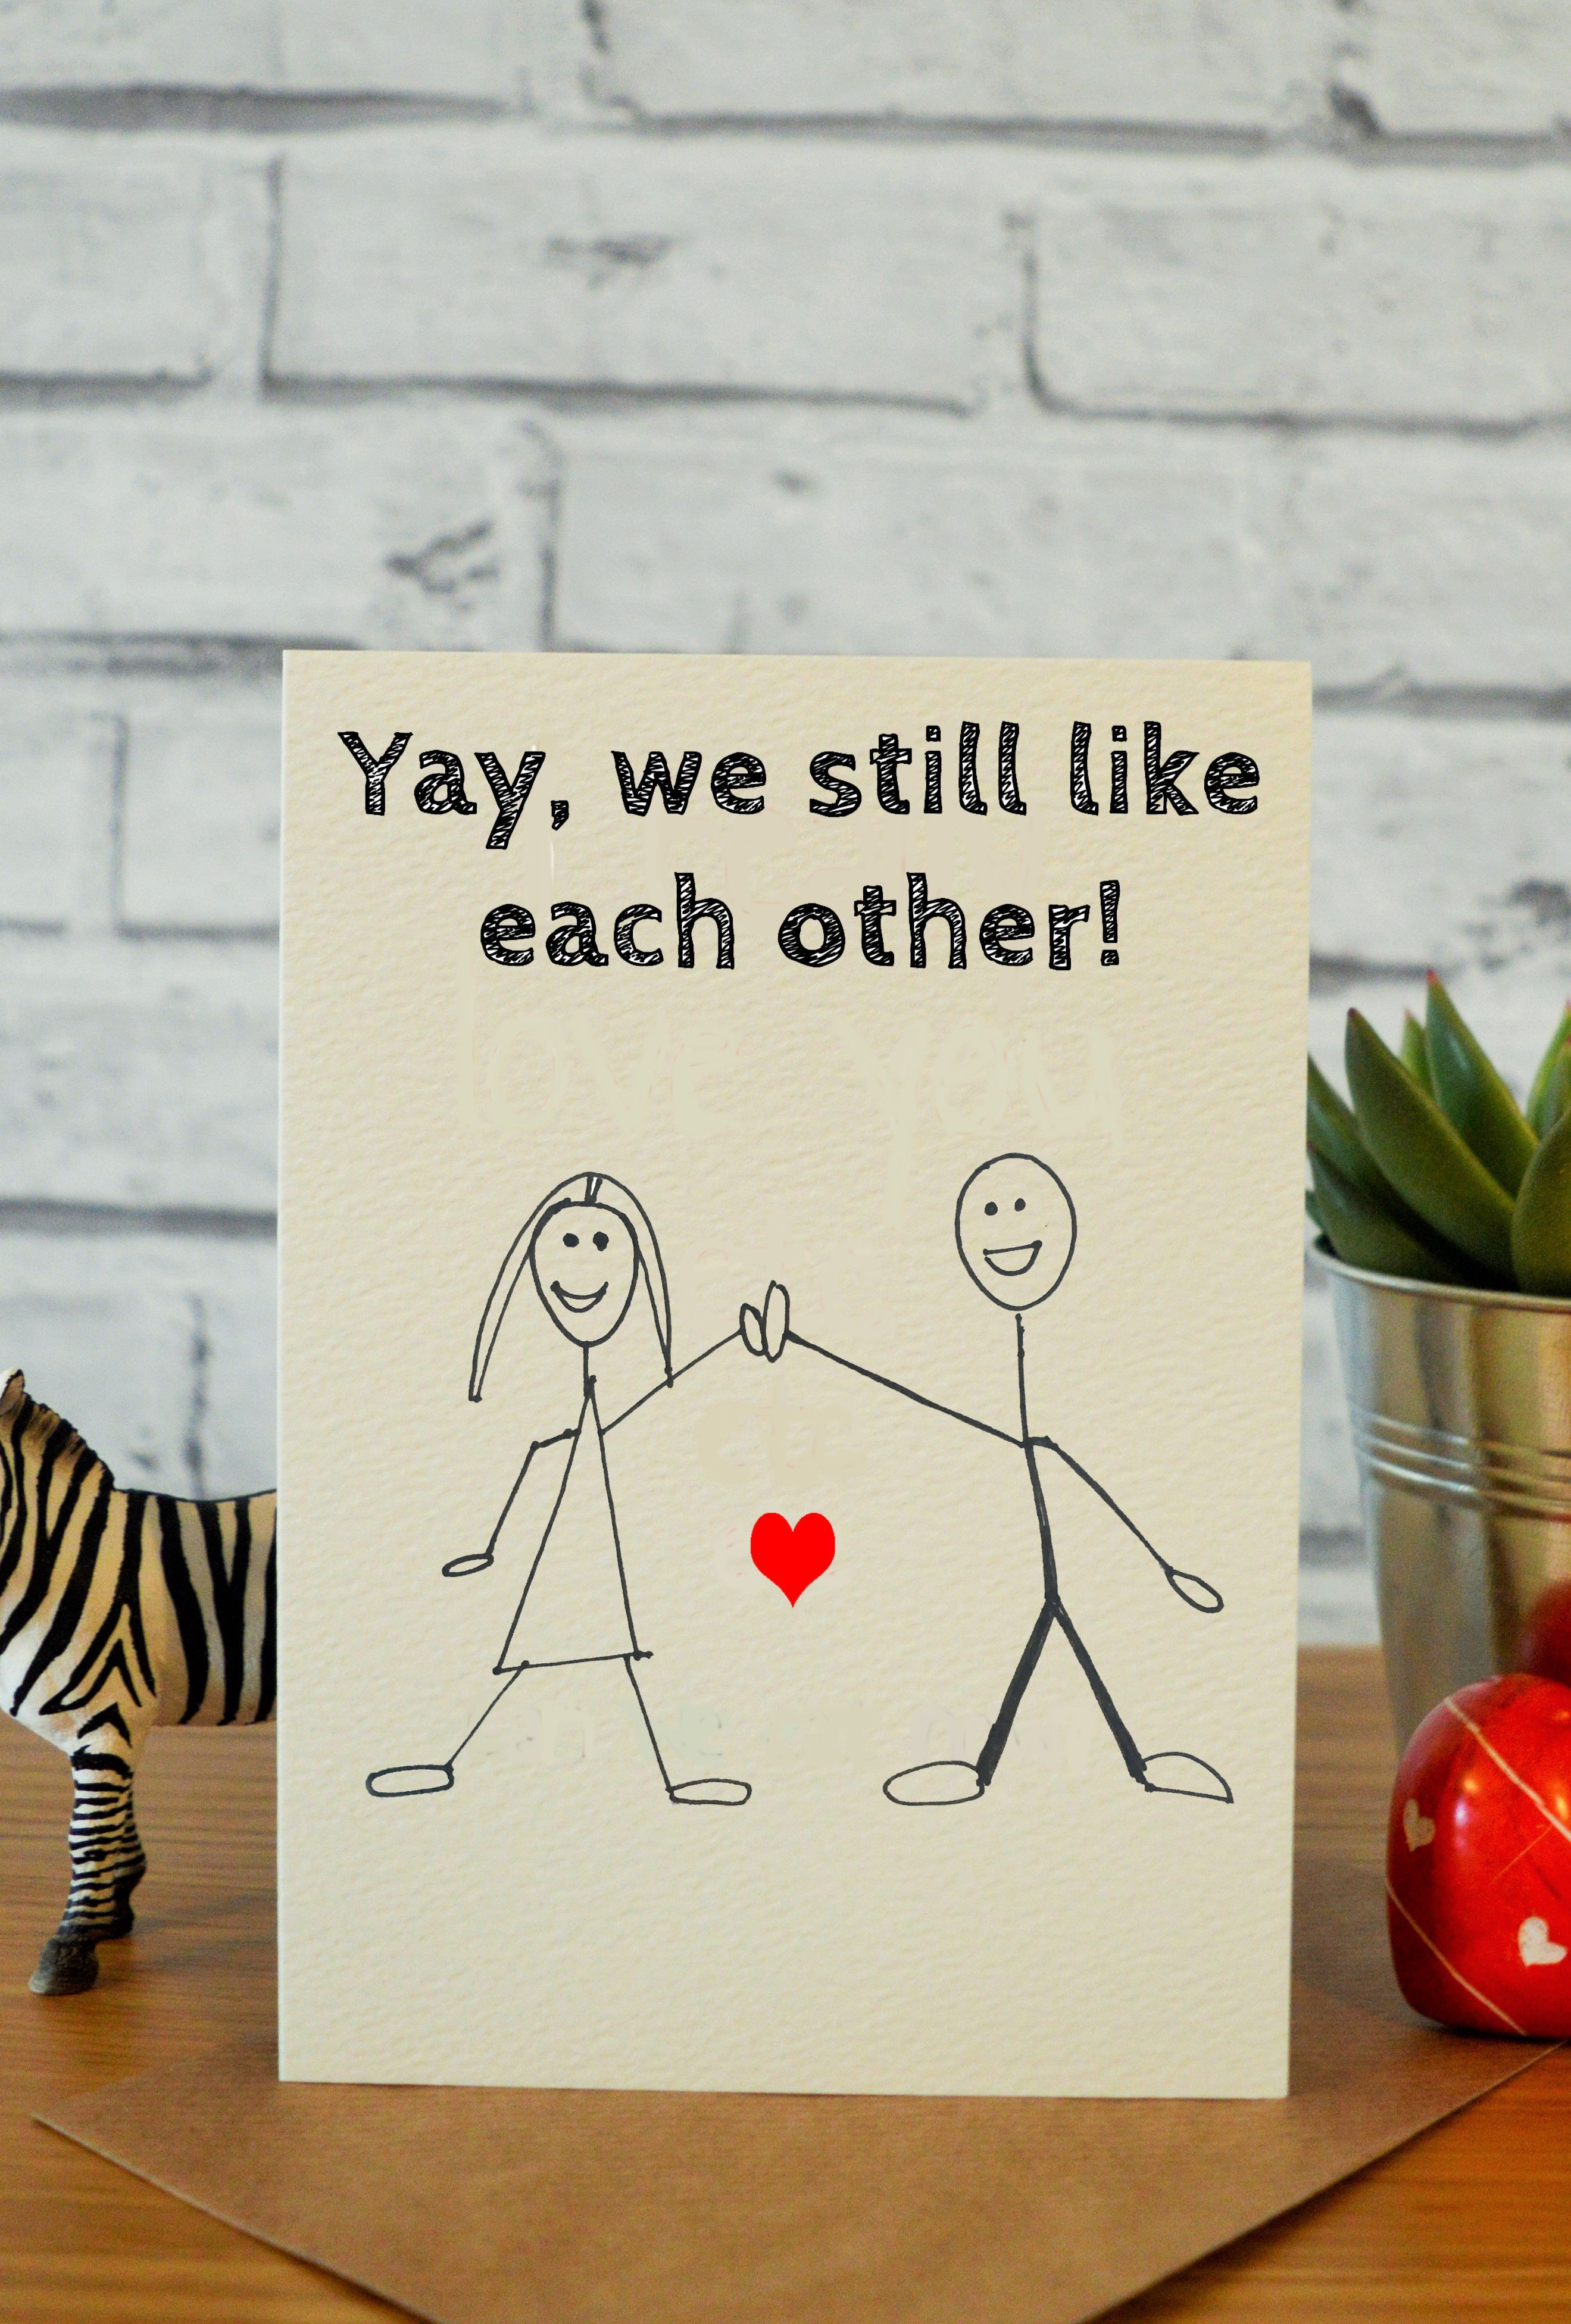 Funny Anniversary Card For Him Funny Anniversary Card For Her Funny Valentines Day Card Anniversary Cards For Him Funny Anniversary Cards Anniversary Funny